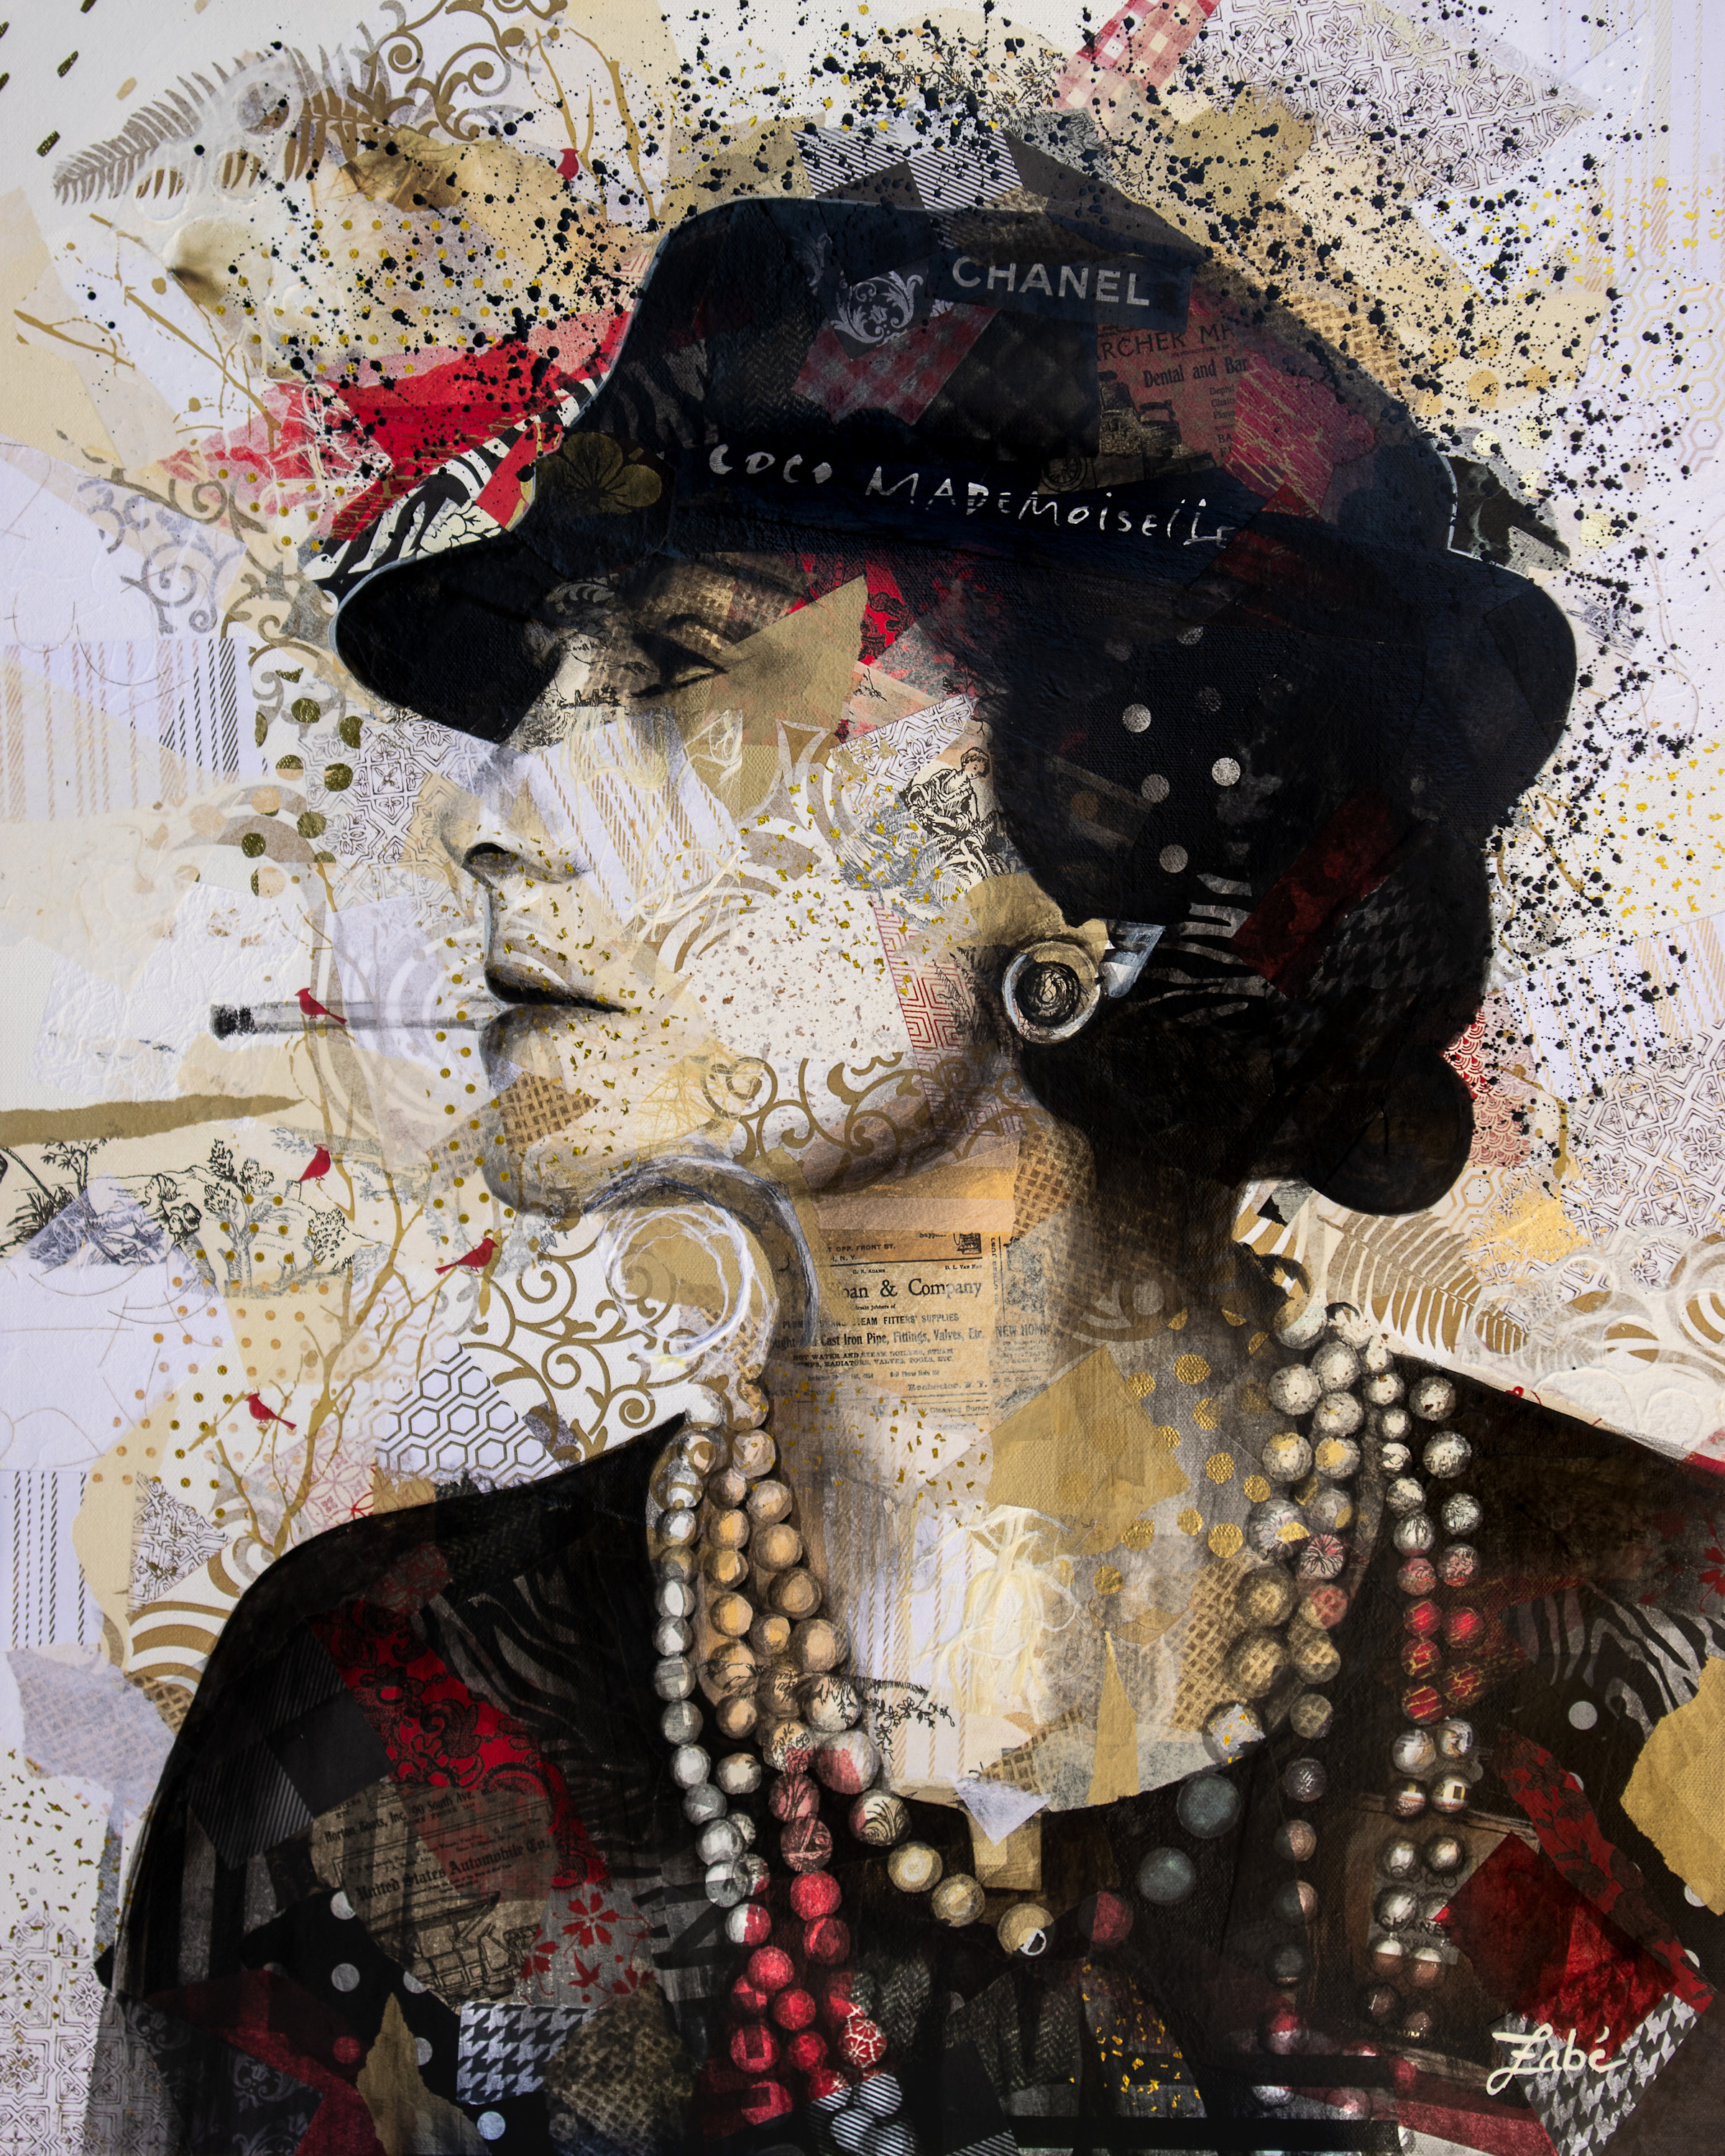 24x30 zabe arts chanel collage painting s7dkv0